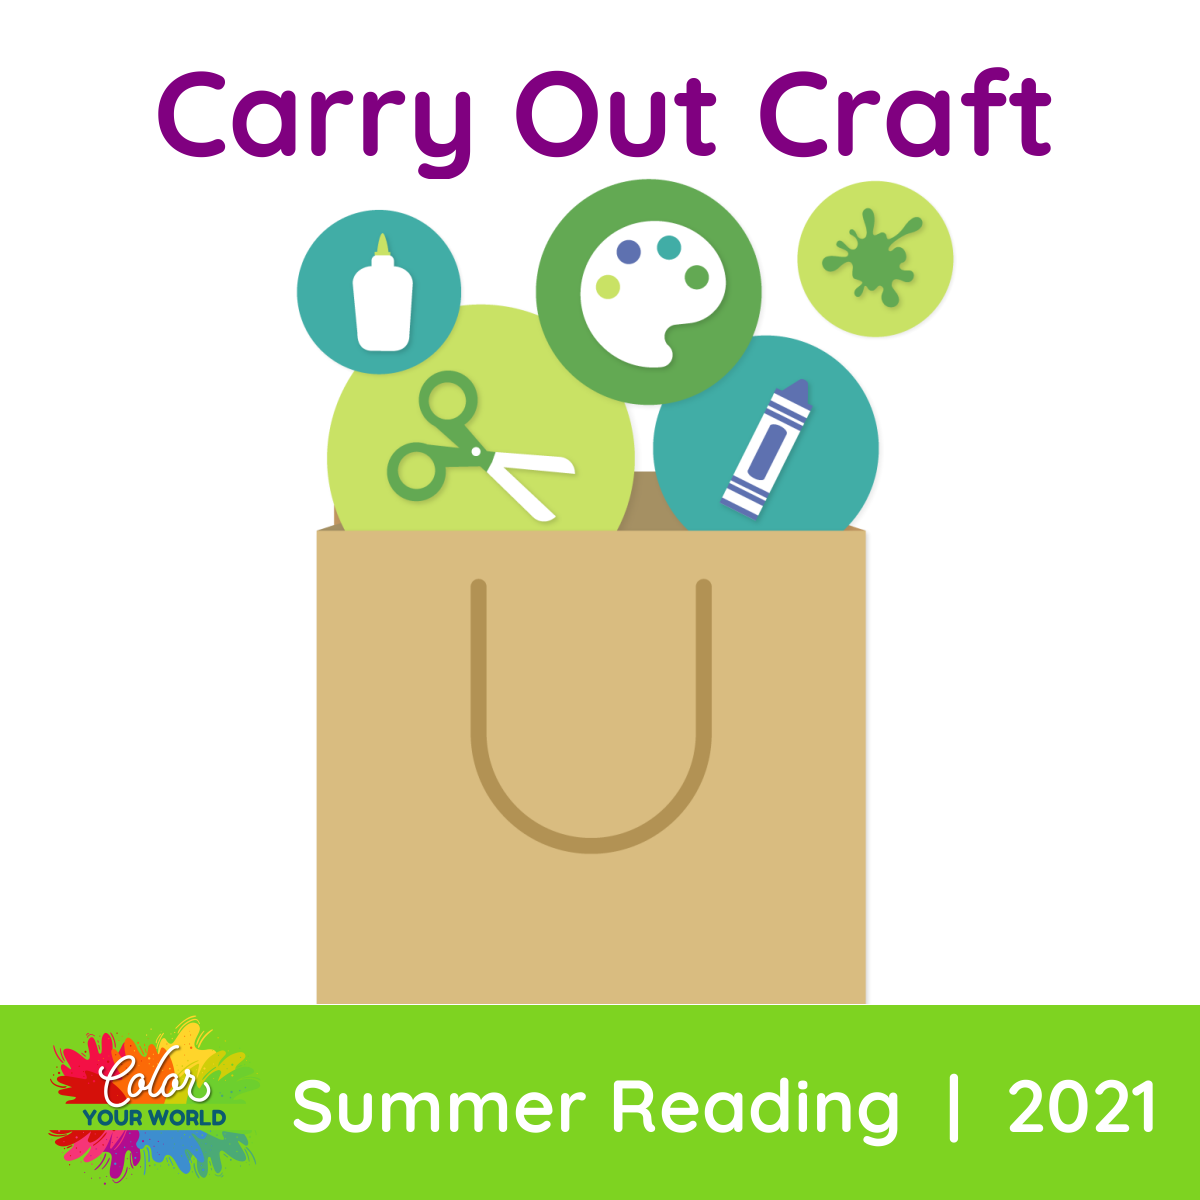 Carry Out Craft Color Your World Summer Reading 2021